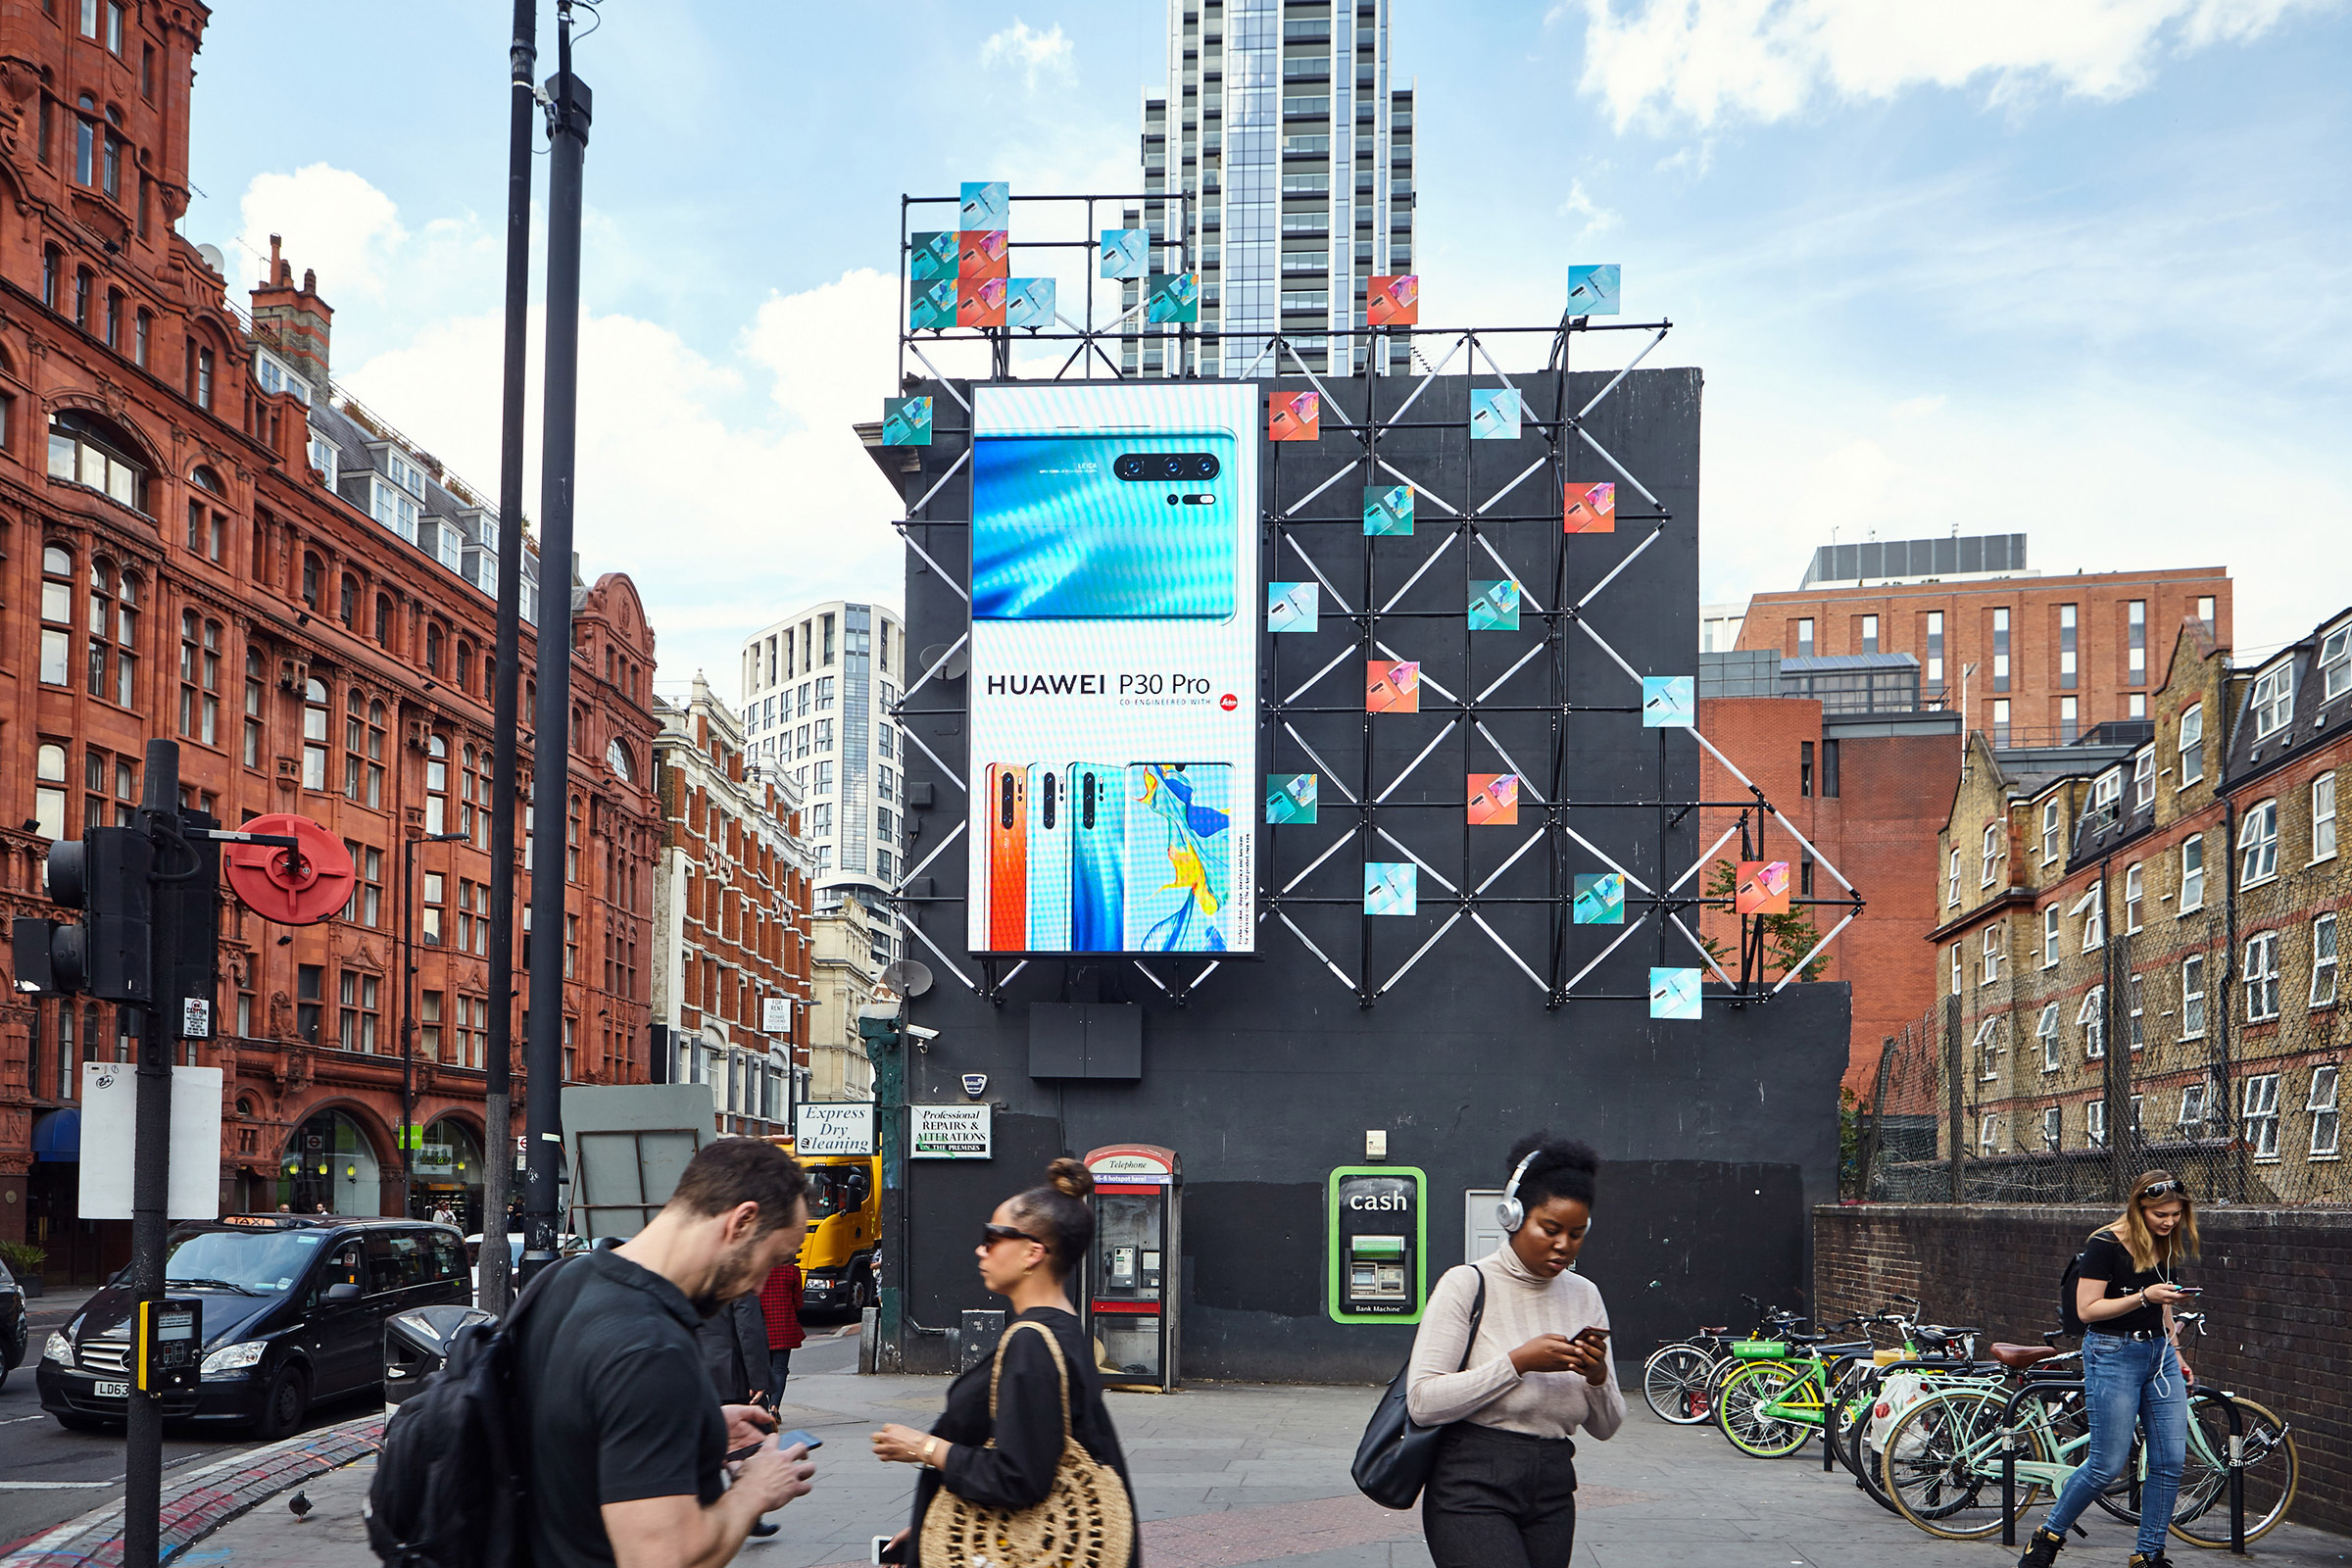 A Huawei advertisement on a billboard in London, May, 23, 2019.